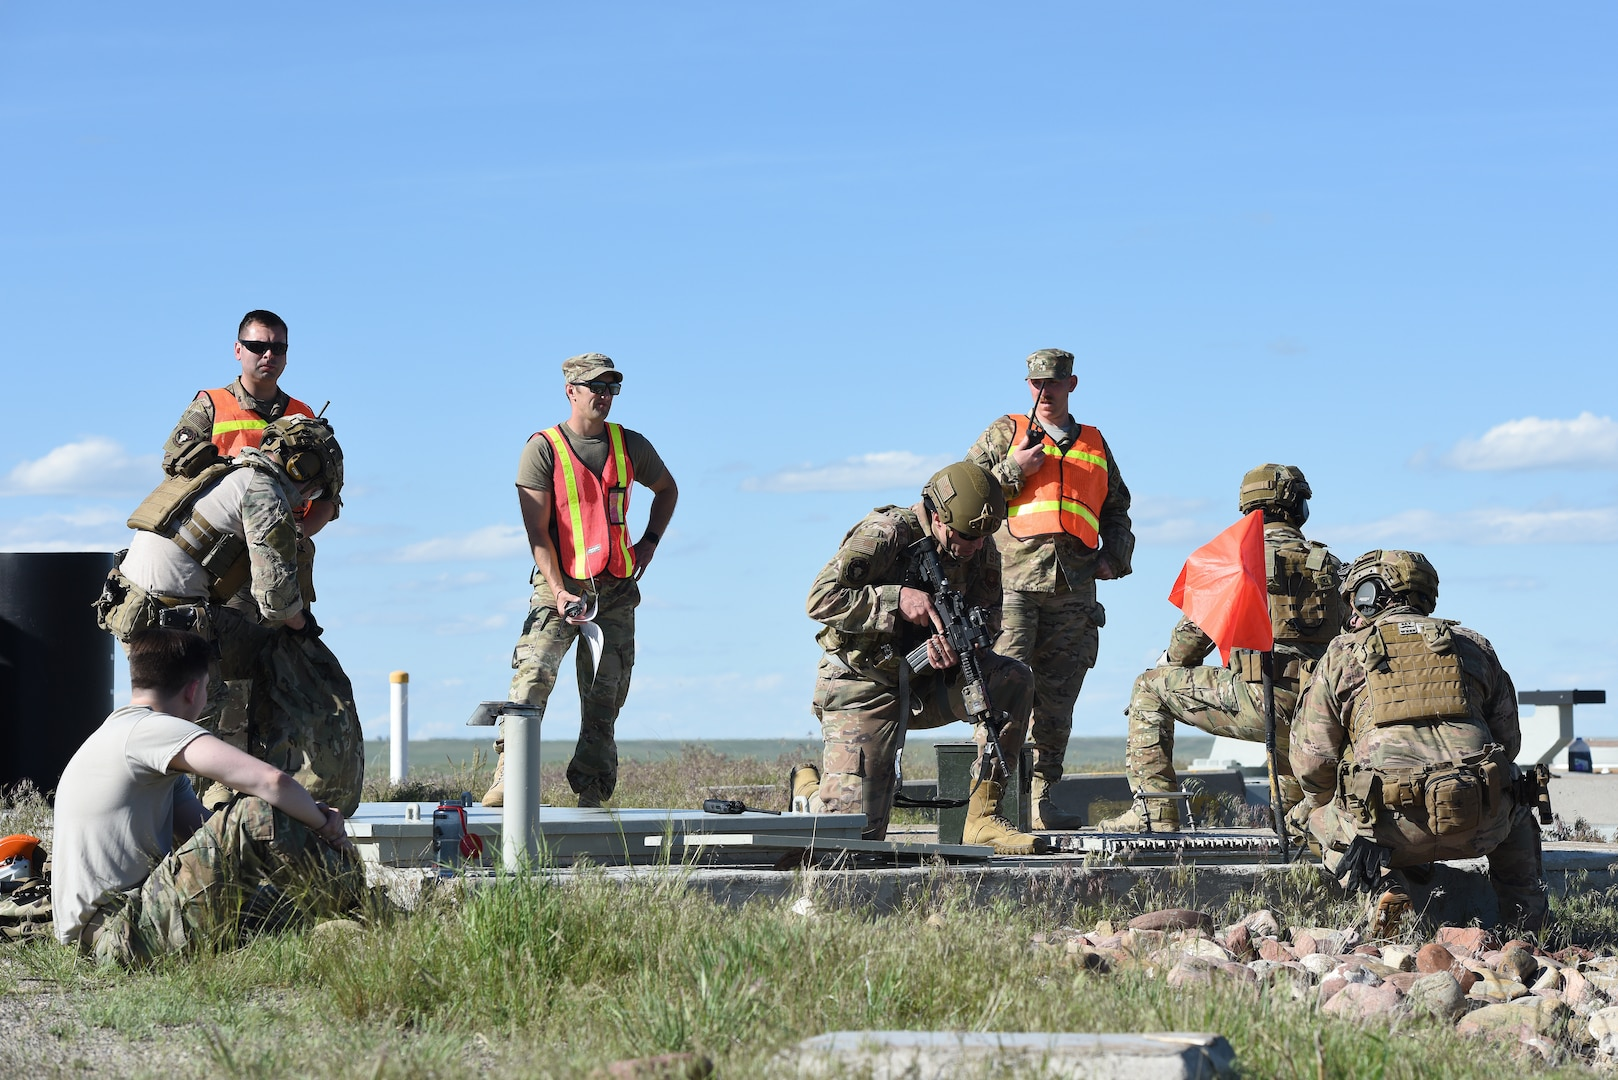 Airmen survey a launch facility integrated recapture and recovery exercise June 11, 2019, at an intercontinental ballistic missile launch facility near Simms, Mont.